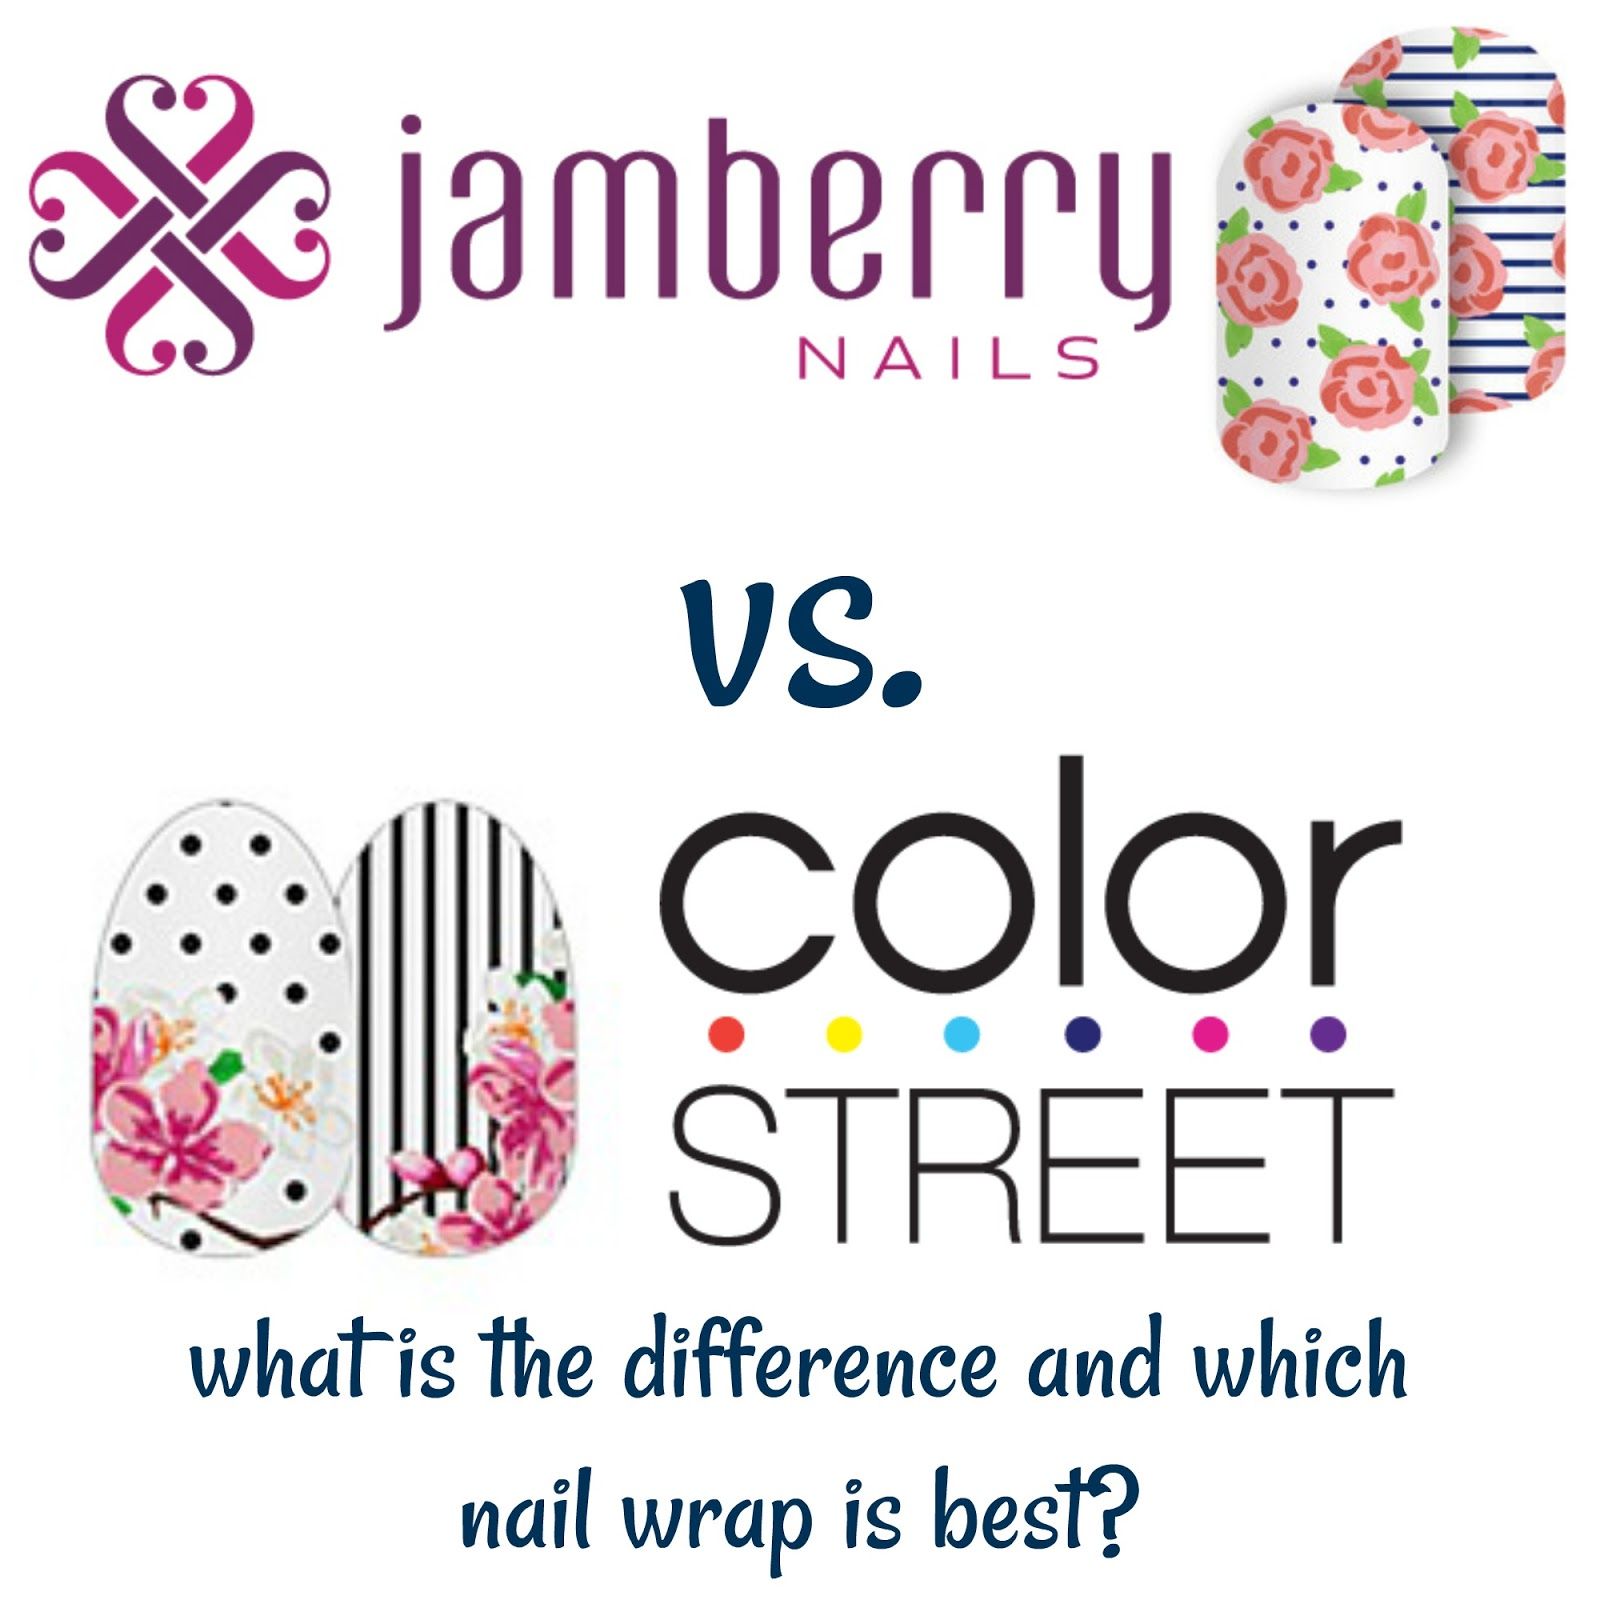 Color Street Vs Jamberry